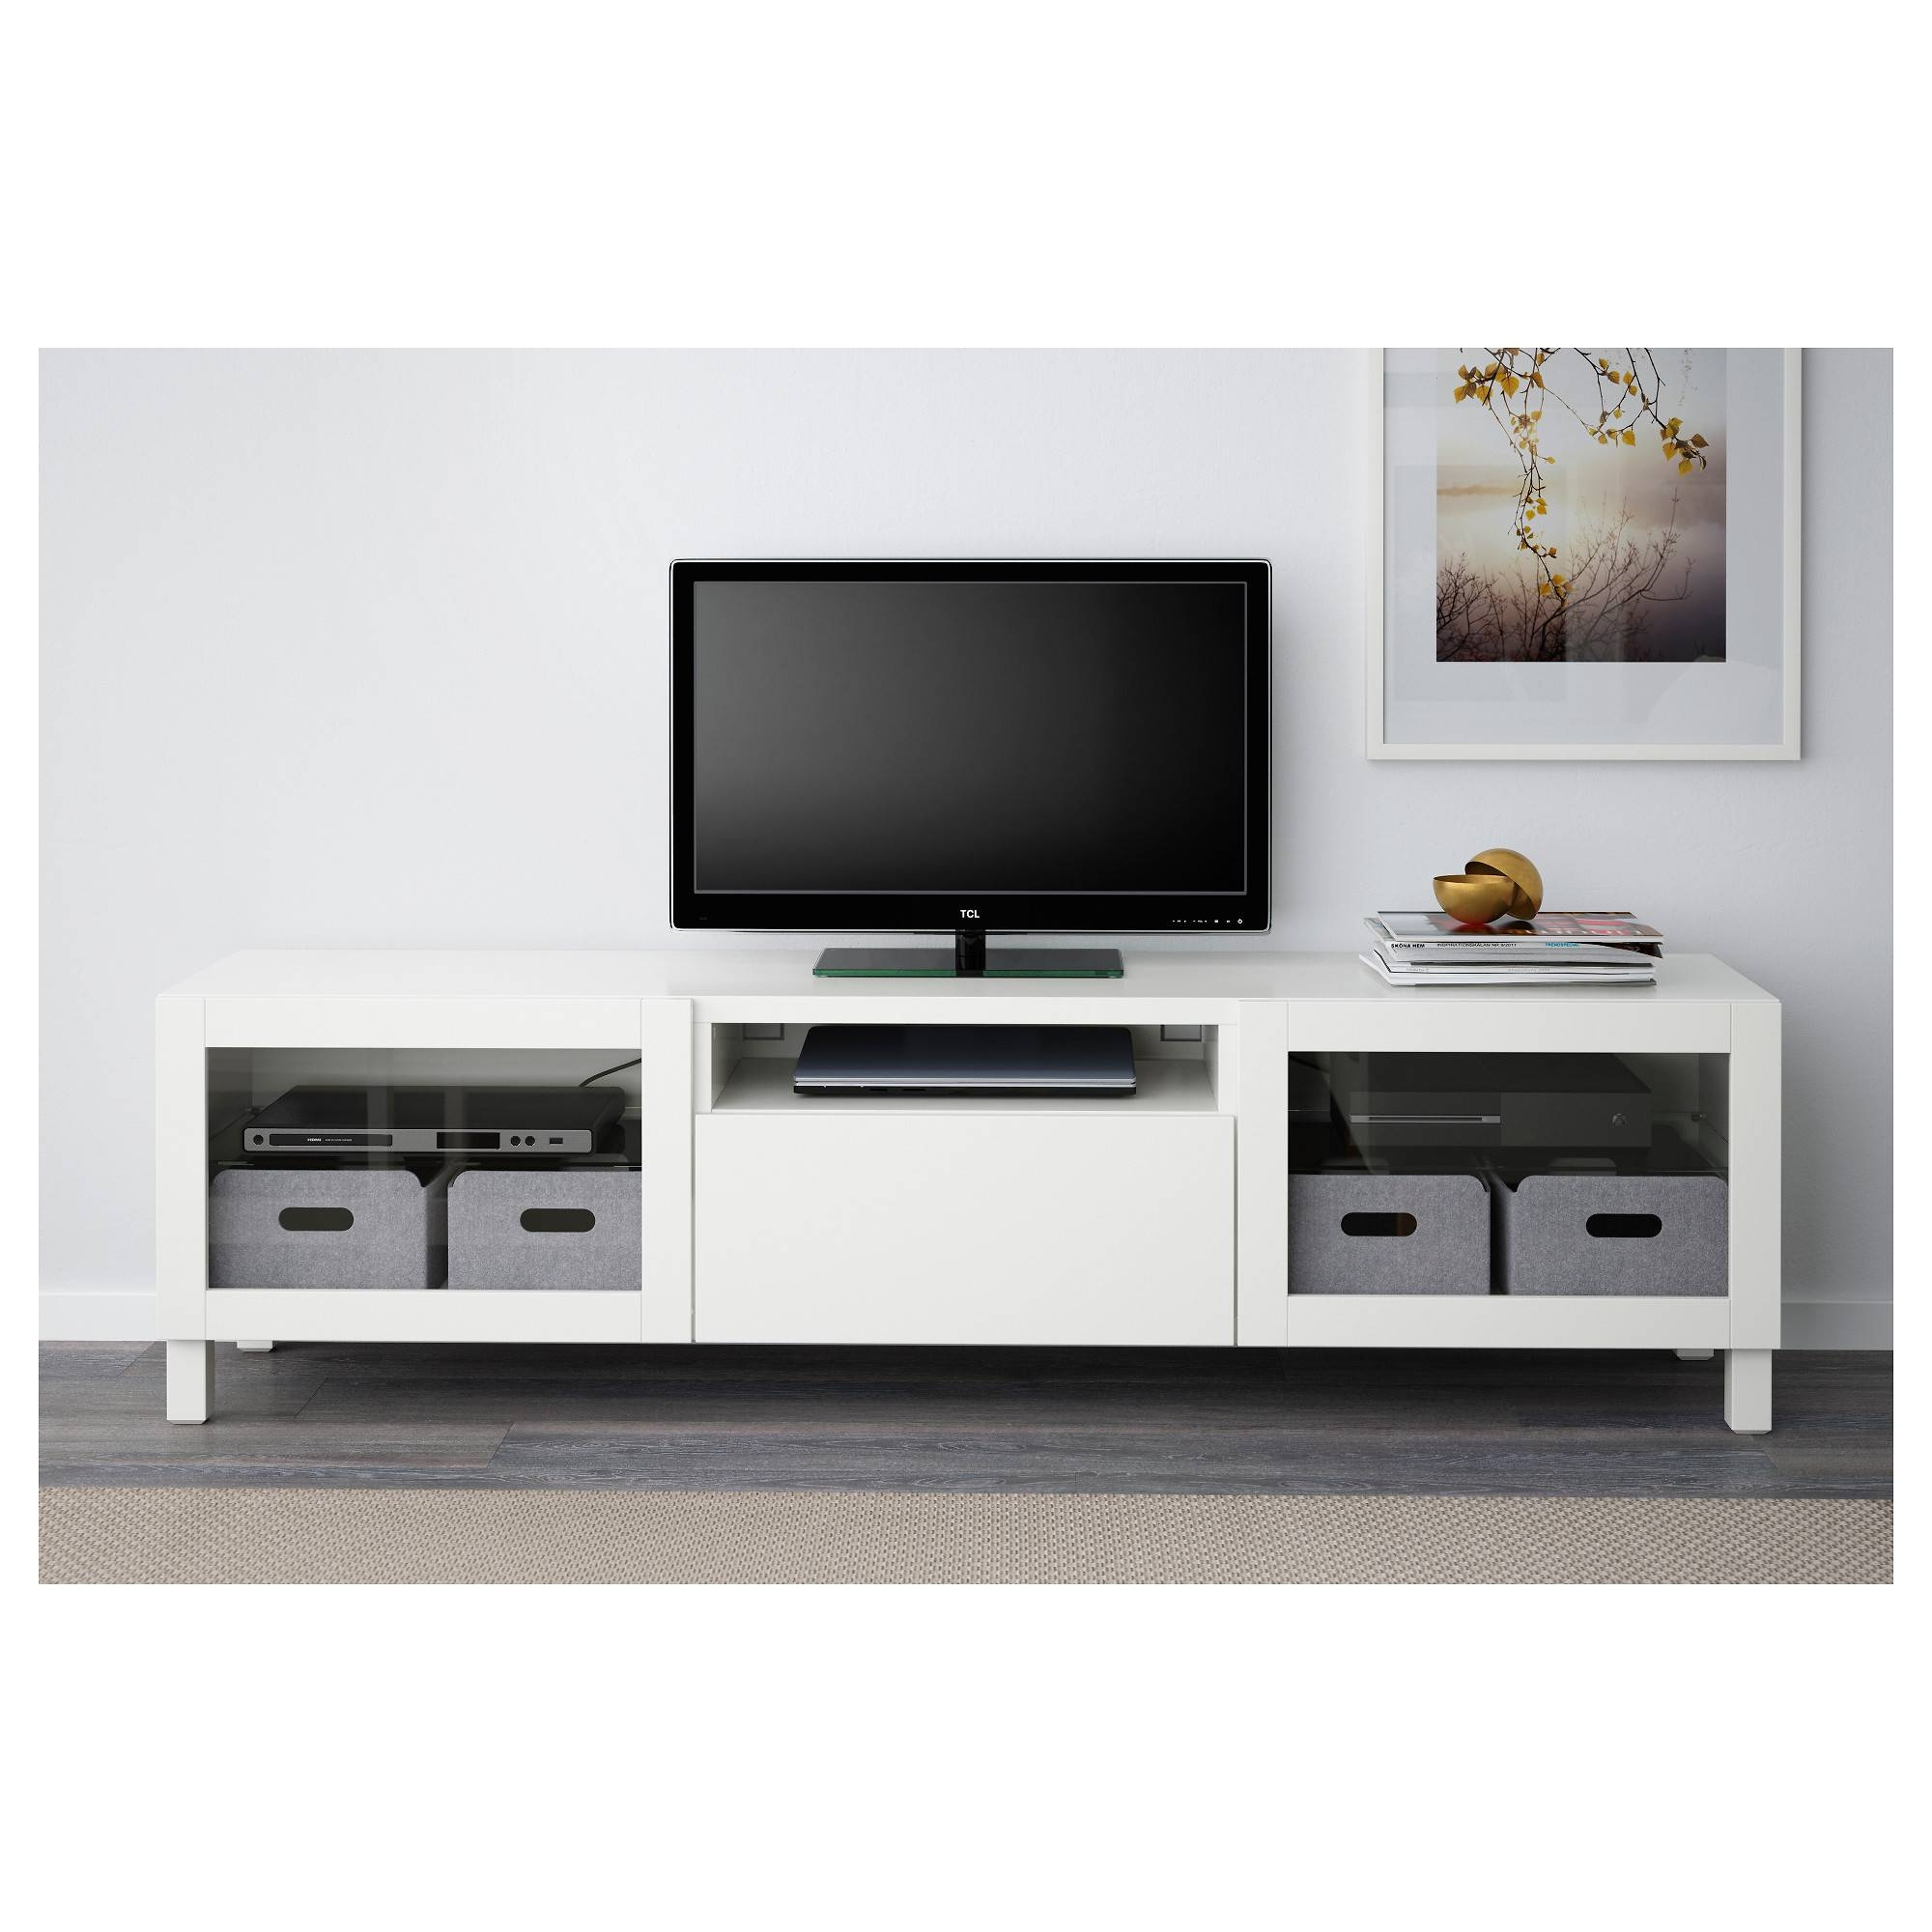 Lappviken Drawer Front - Light Grey - Ikea throughout 60 Cm High Tv Stand (Image 5 of 15)